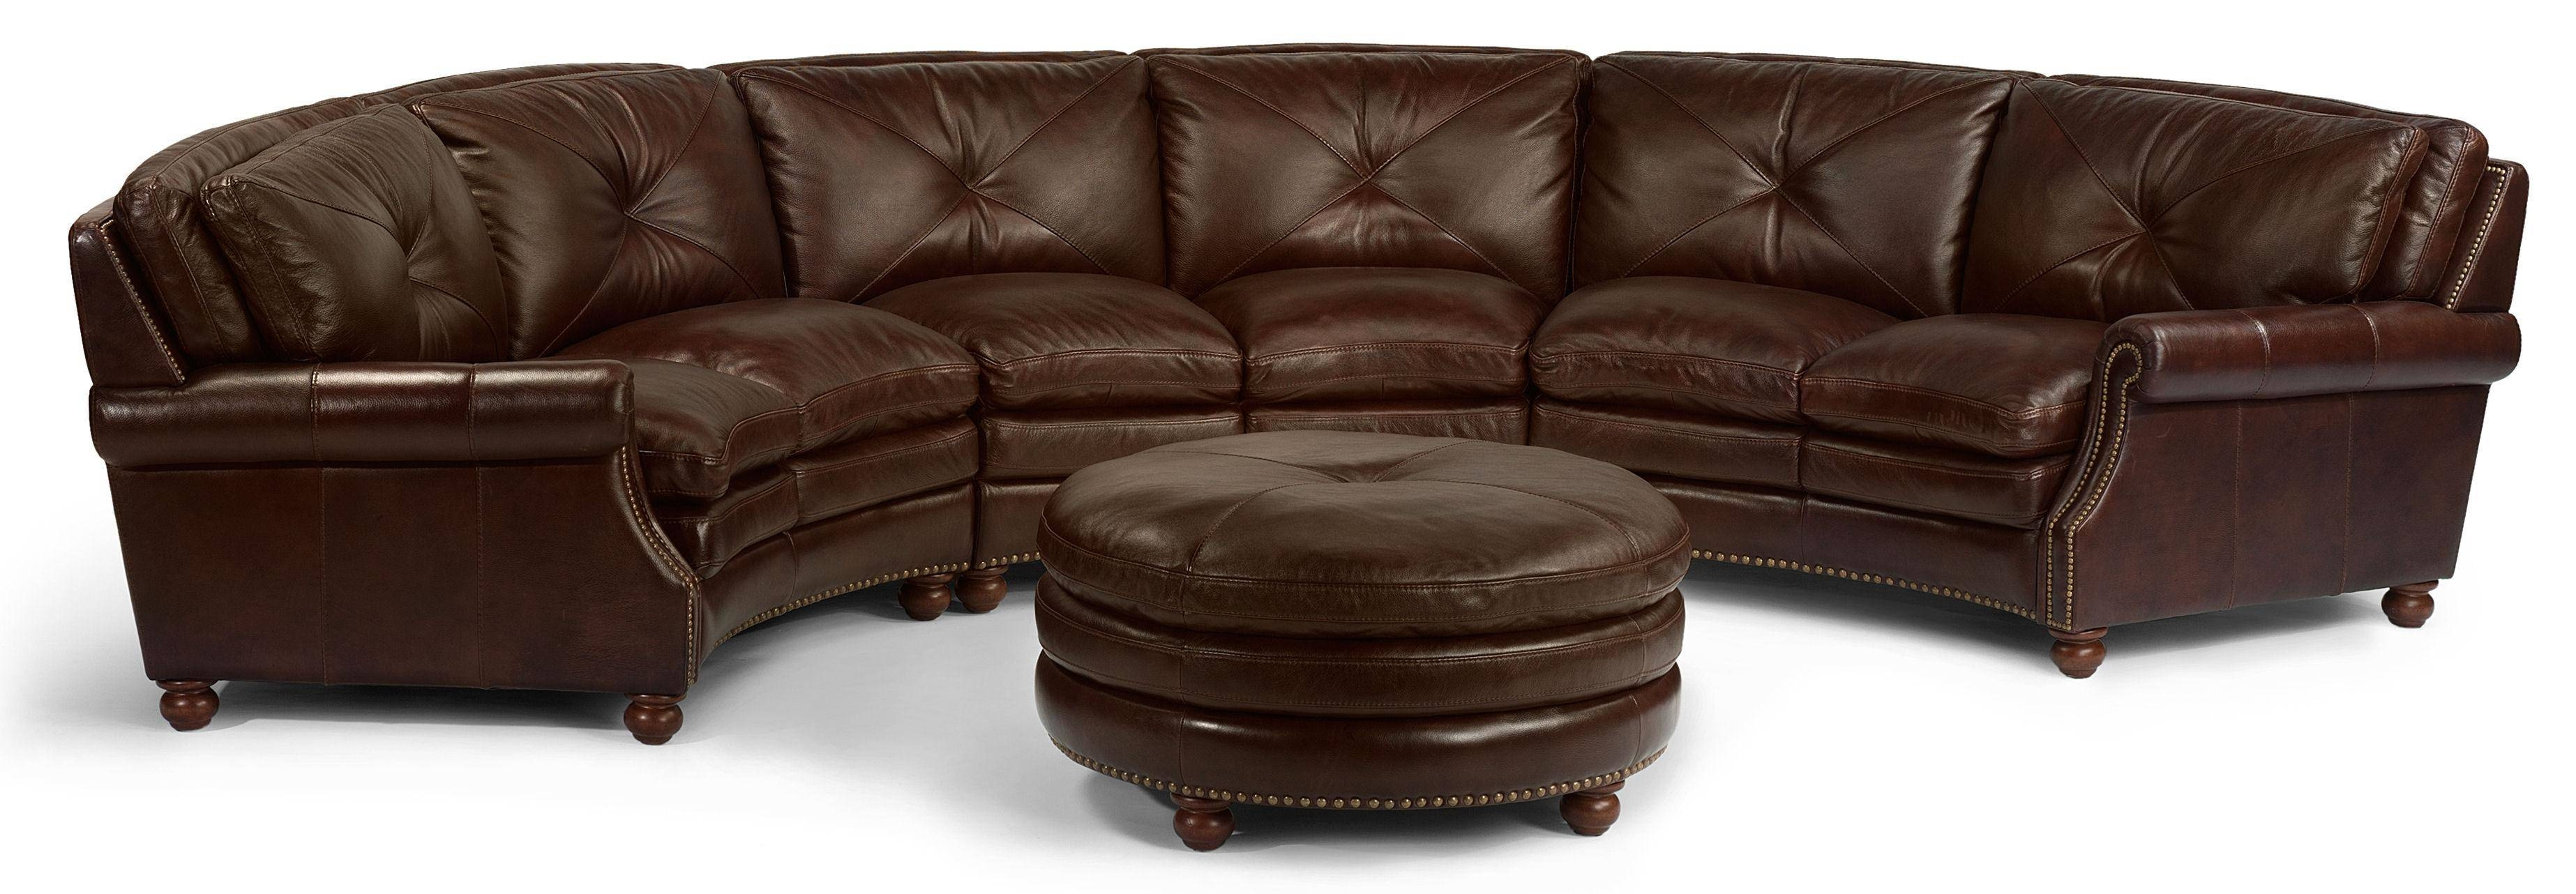 Flexsteel Latitudes Suffolk Round Sectional Sofa With Nailhead Inside Circular Sectional Sofa (View 10 of 30)